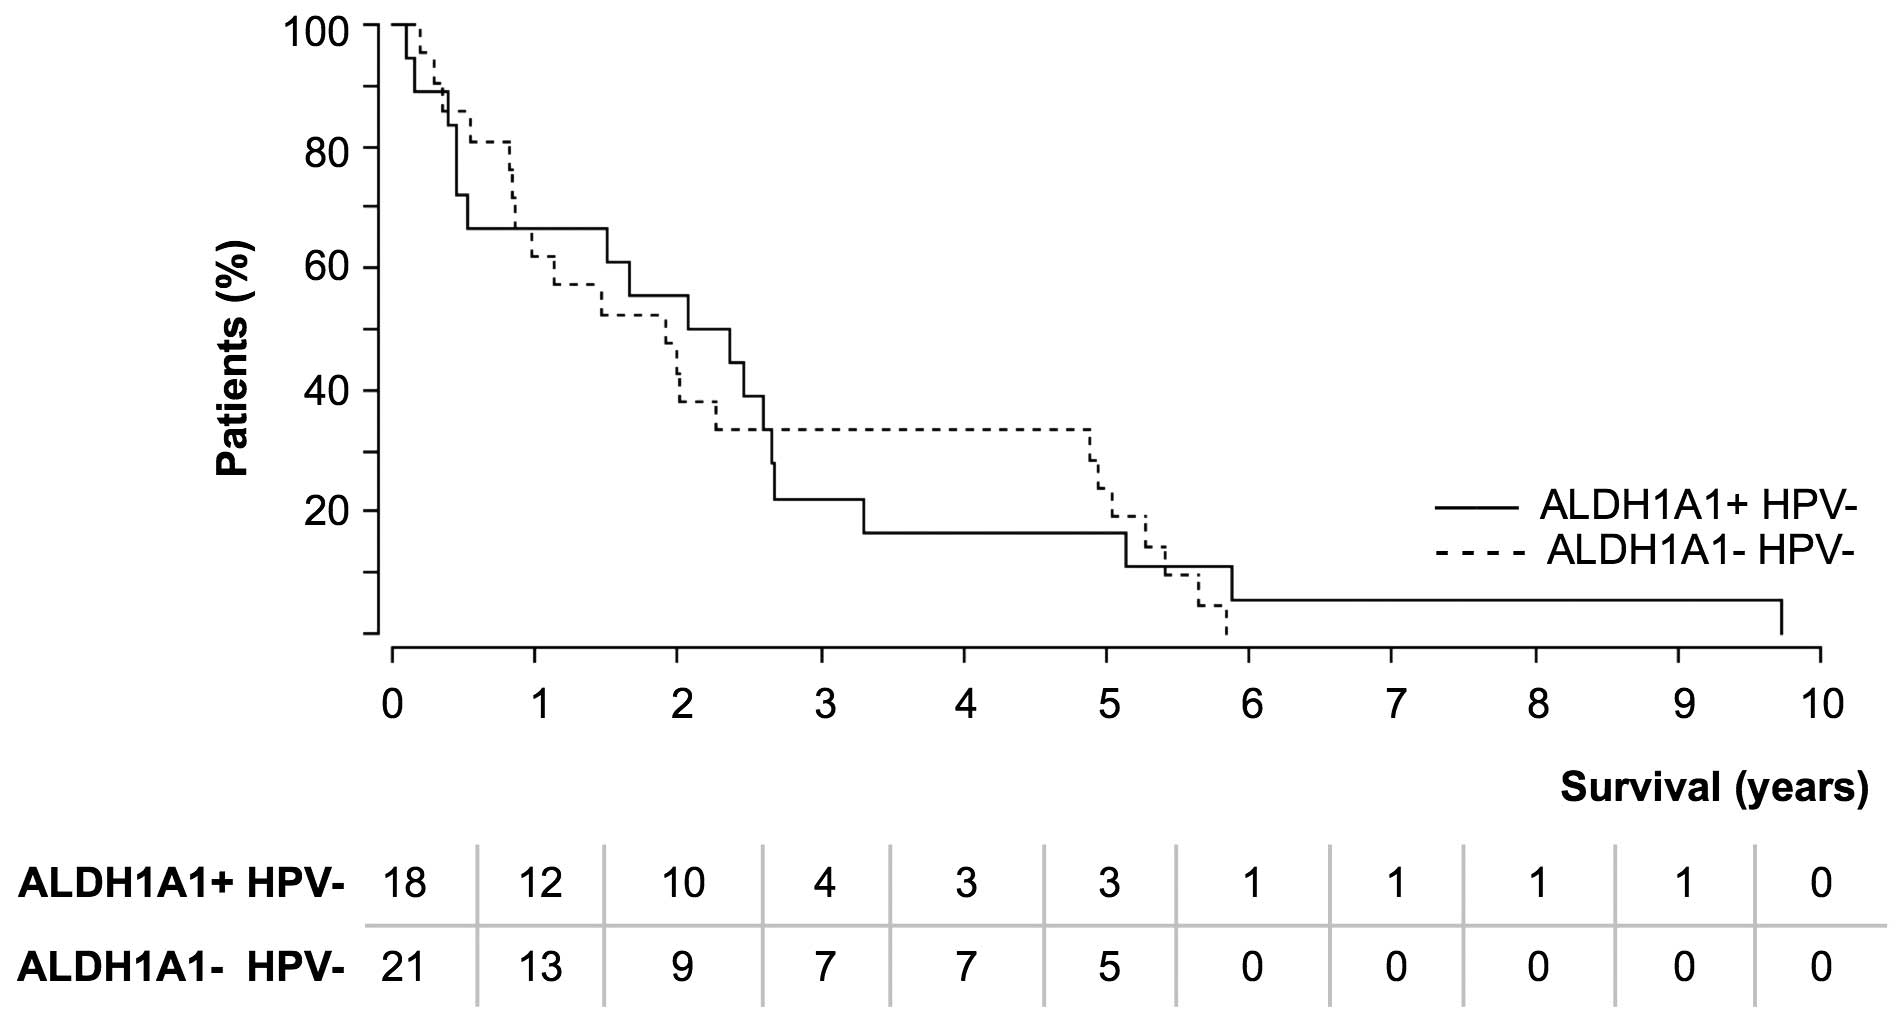 Hpv head and neck cancer survival rates. Intra-arterial chemotherapy of ENT cancers